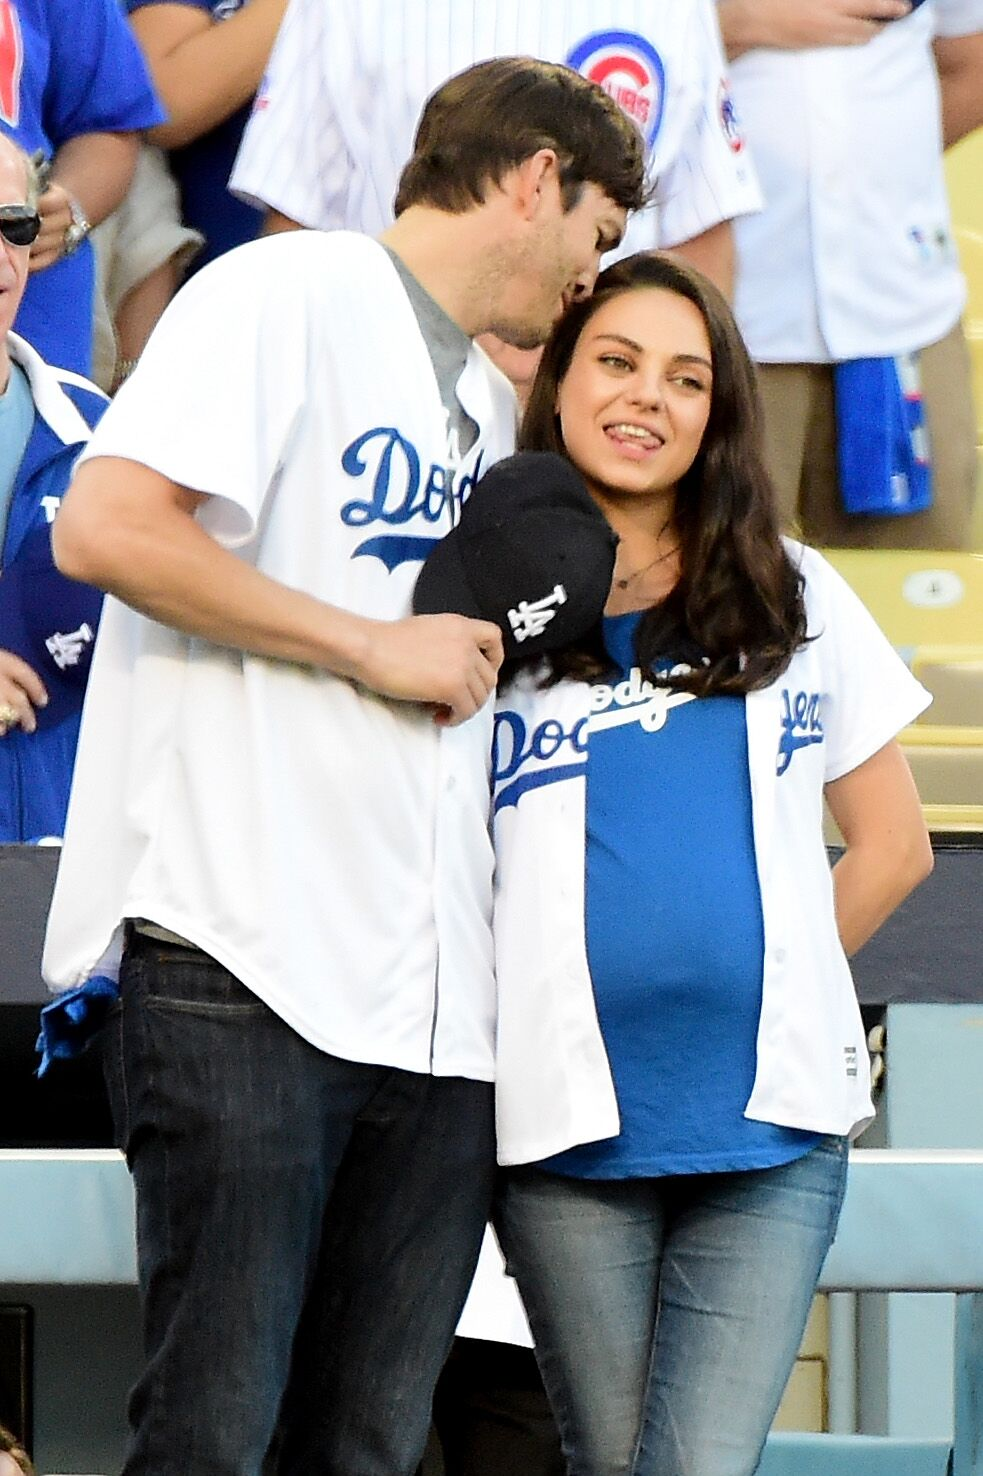 Ashton Kutcher and wife Mila Kunis on the field after they announced the Los Angeles Dodgers starting lineup before game four of the National League Championship Series | Getty Images